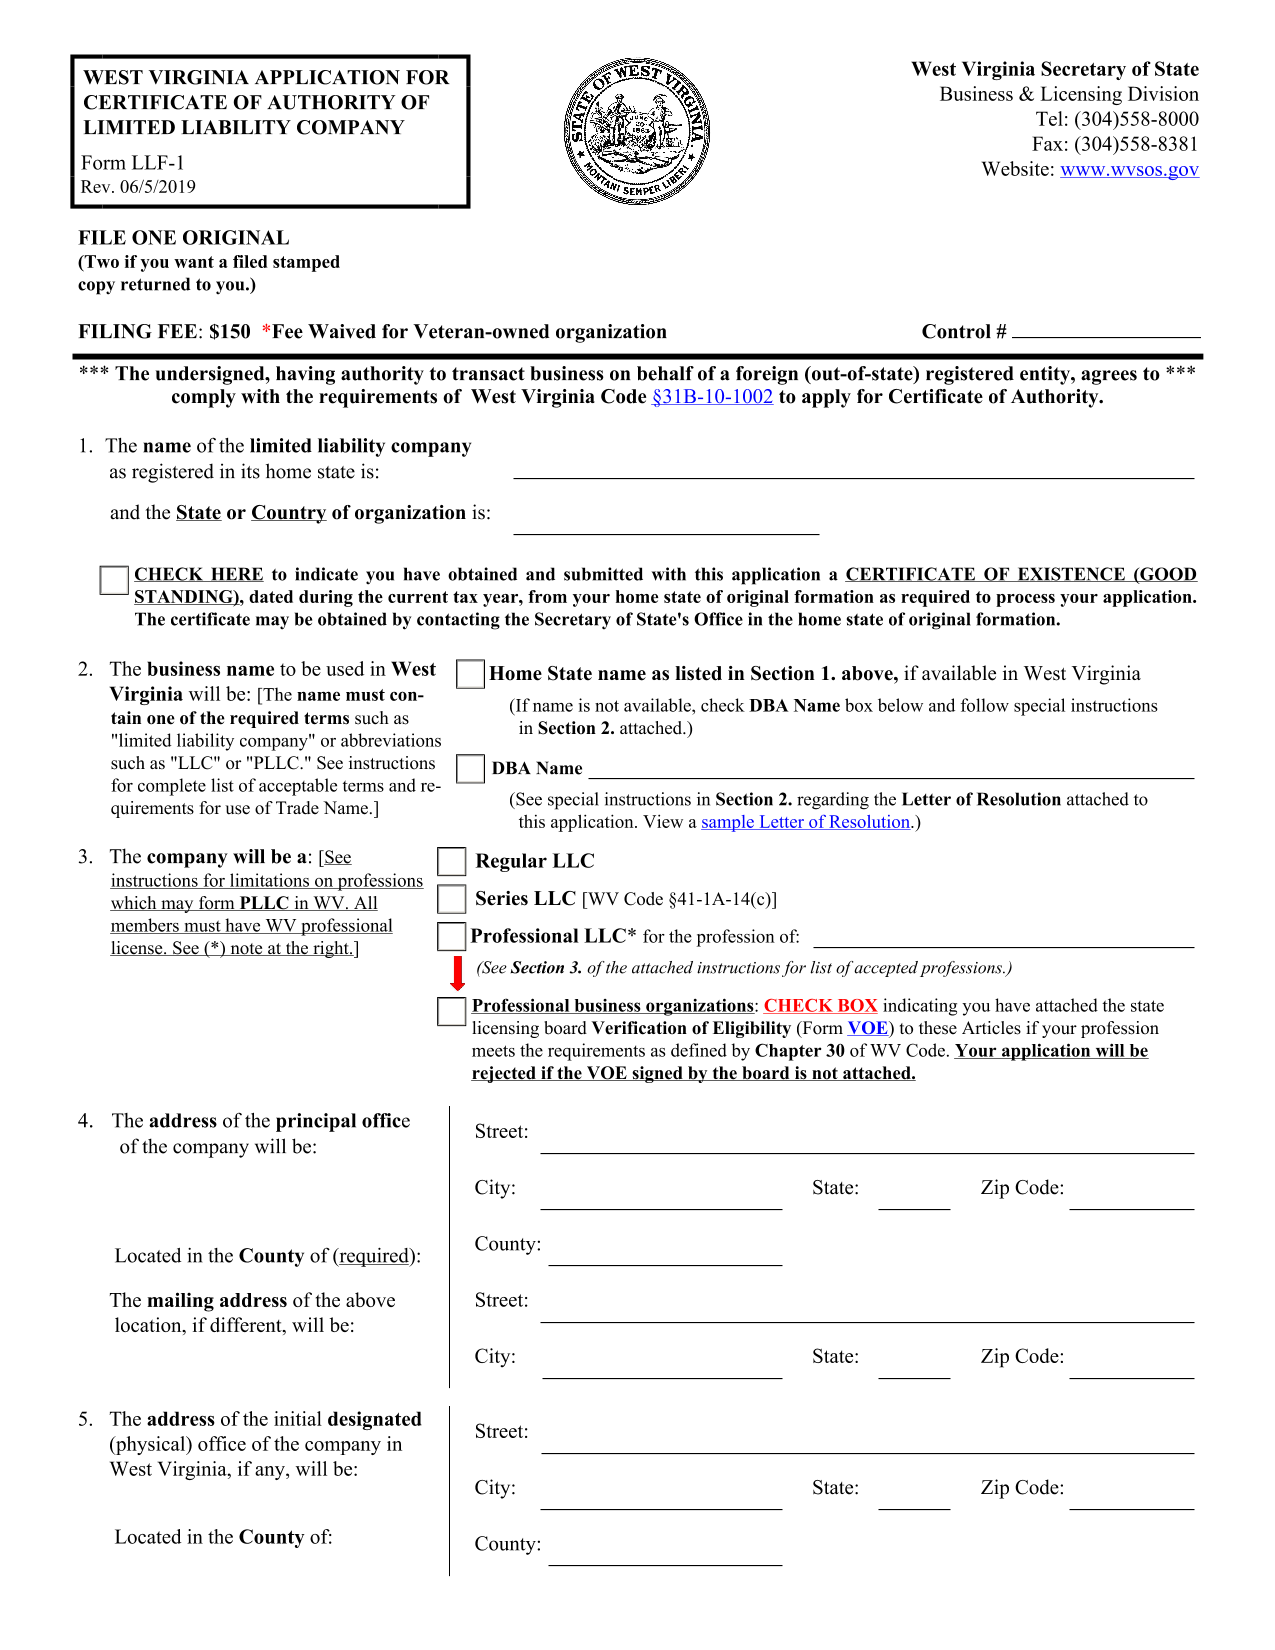 west-virginia-foreign-llc-application-for-certificate-of-authority